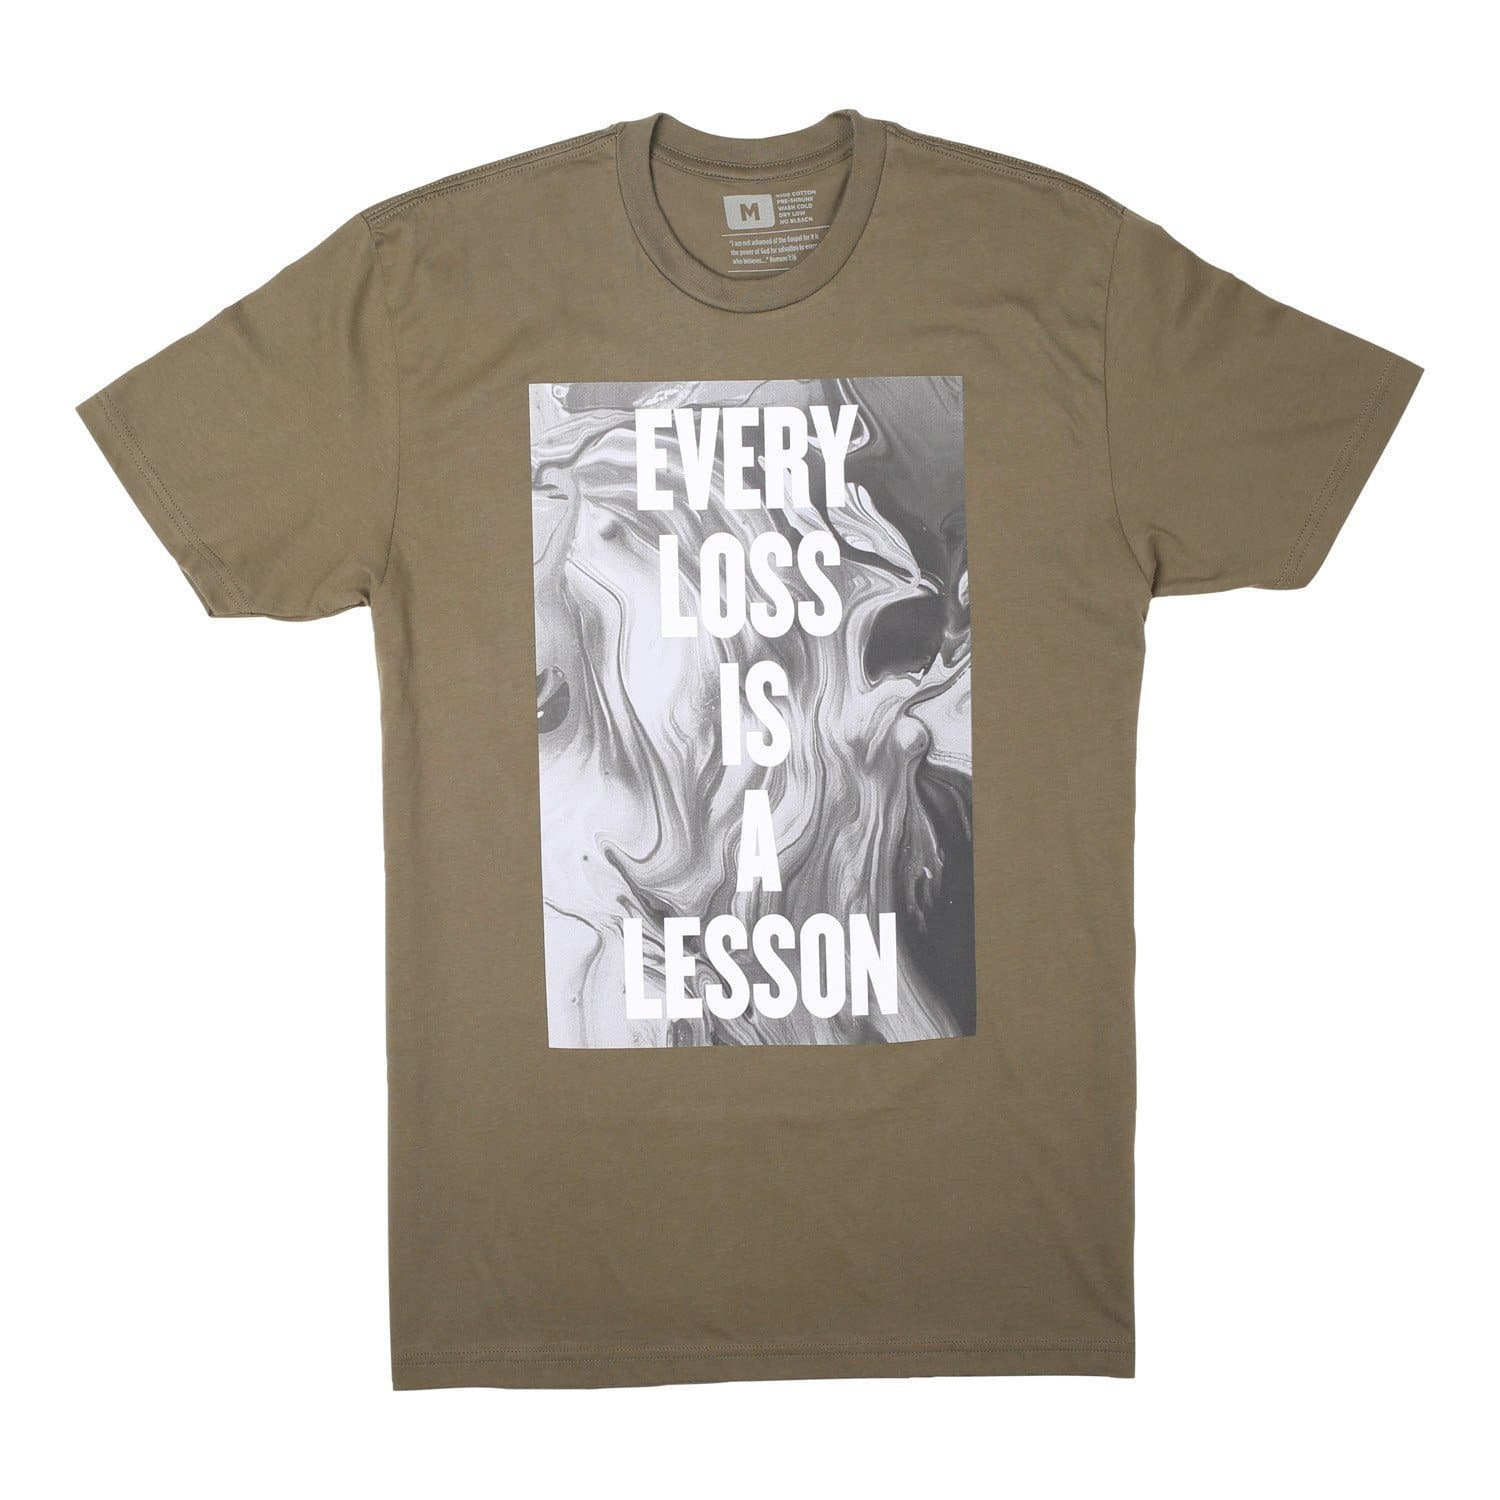 'Every Loss' T-Shirt